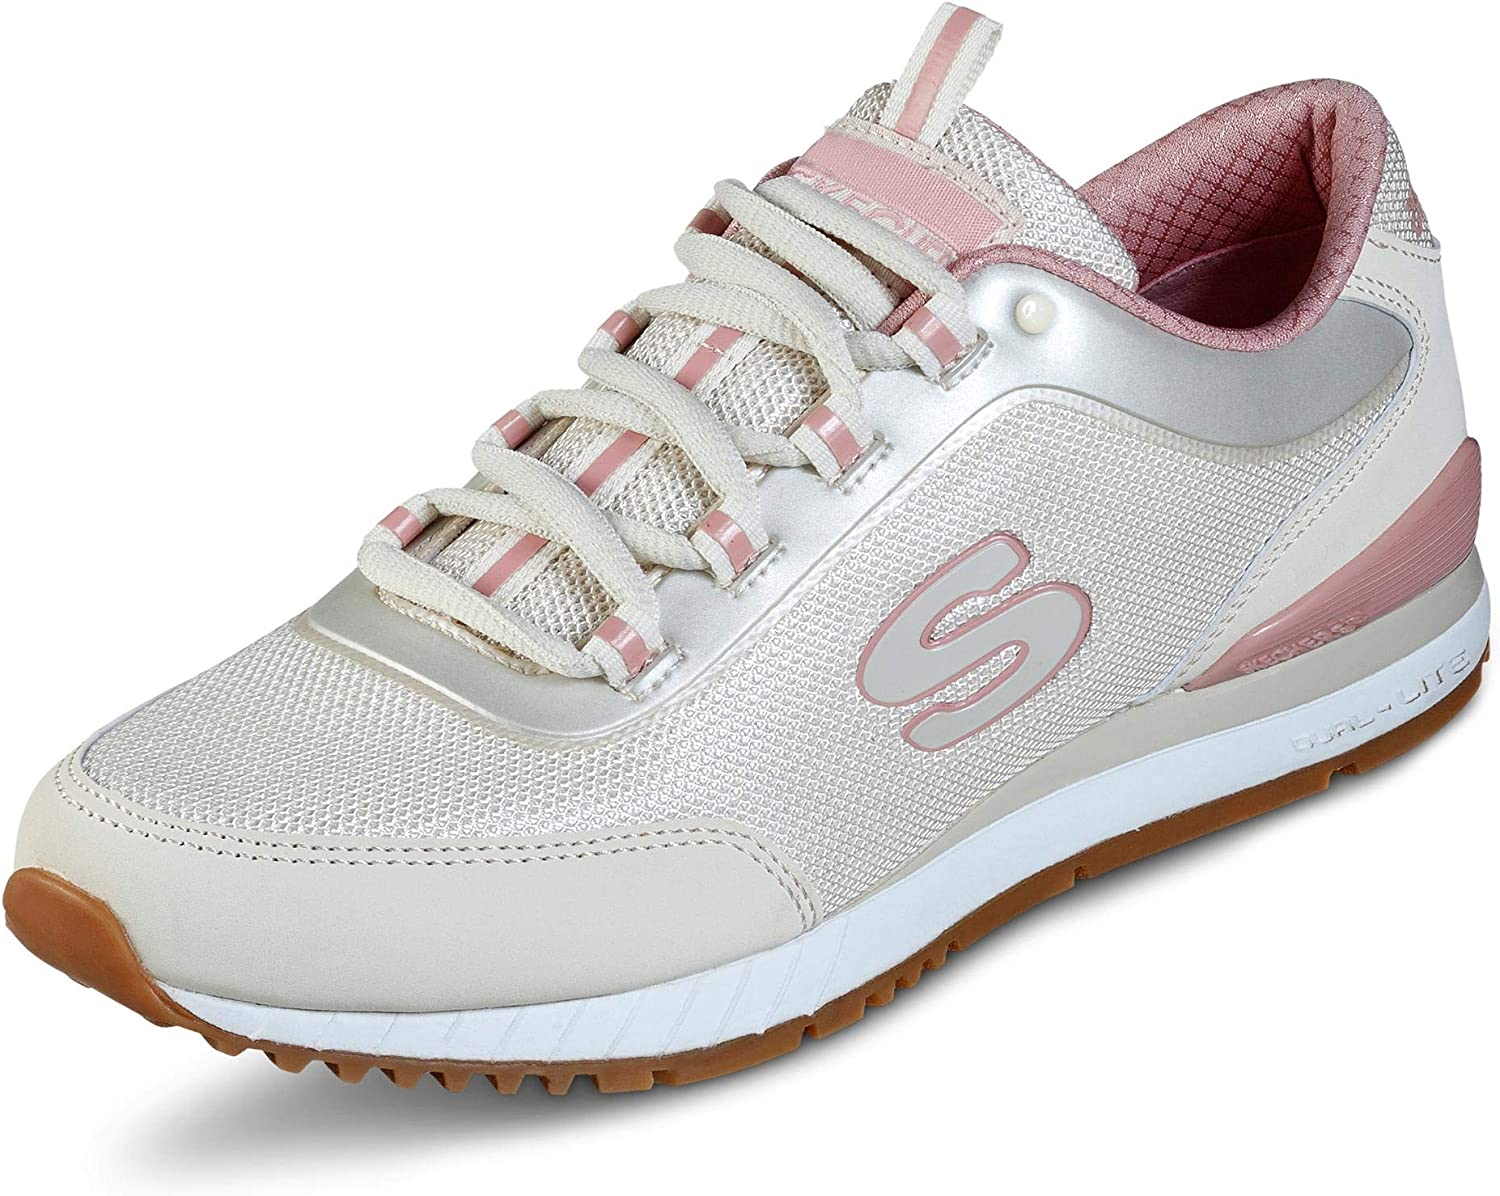 skechers with air cooled memory foam